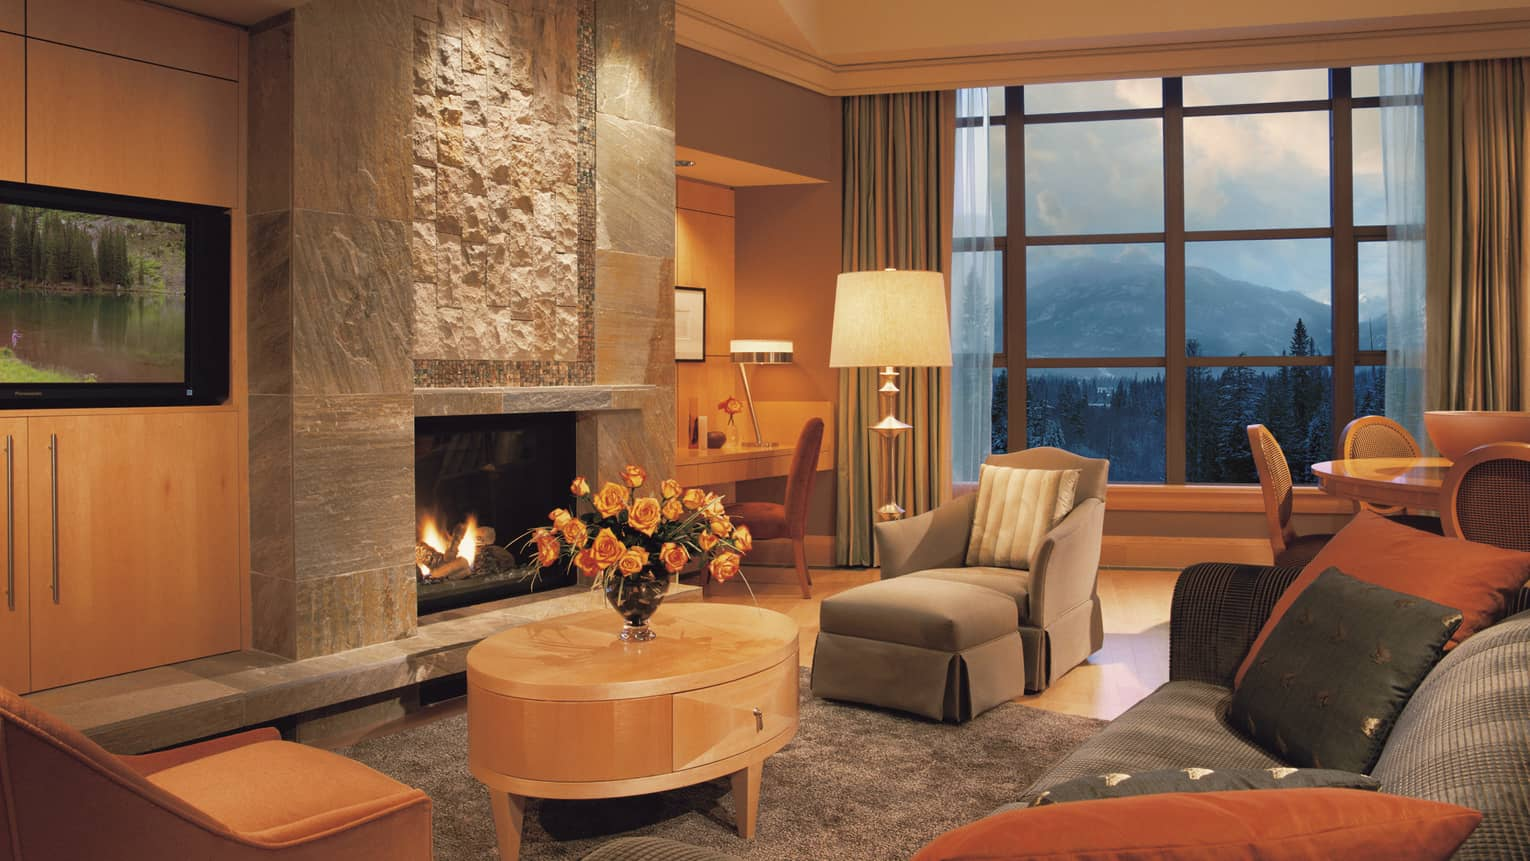 Resort residence living room with grey chaise chair, sofa, table in front of tall stone gas fireplace